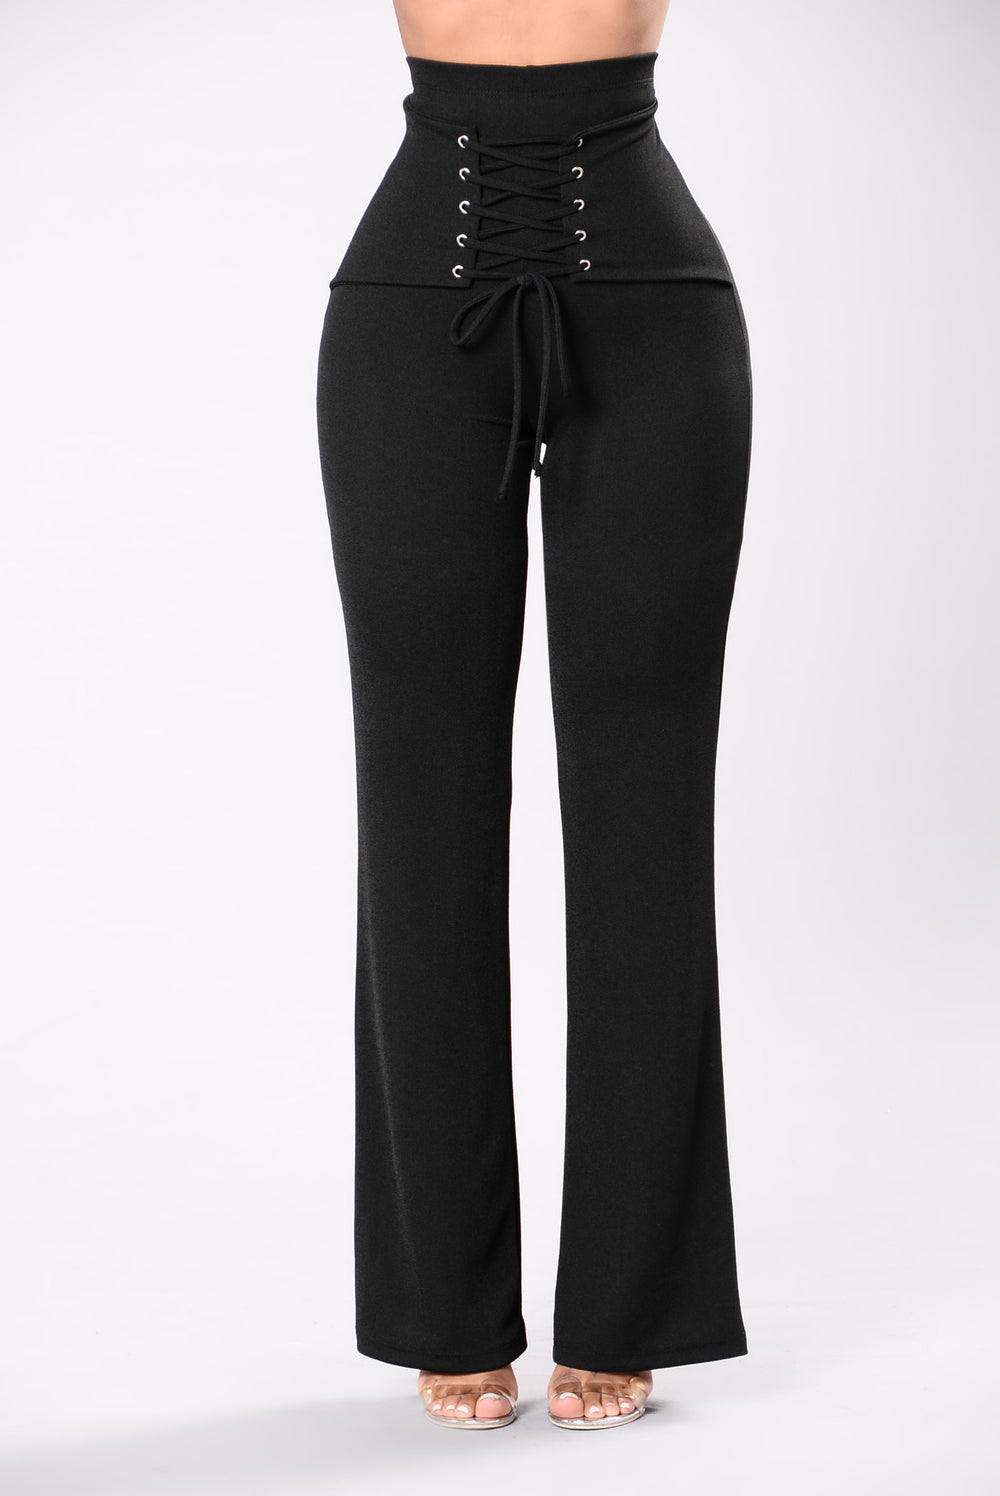 Never Wasting Time Pants - Black